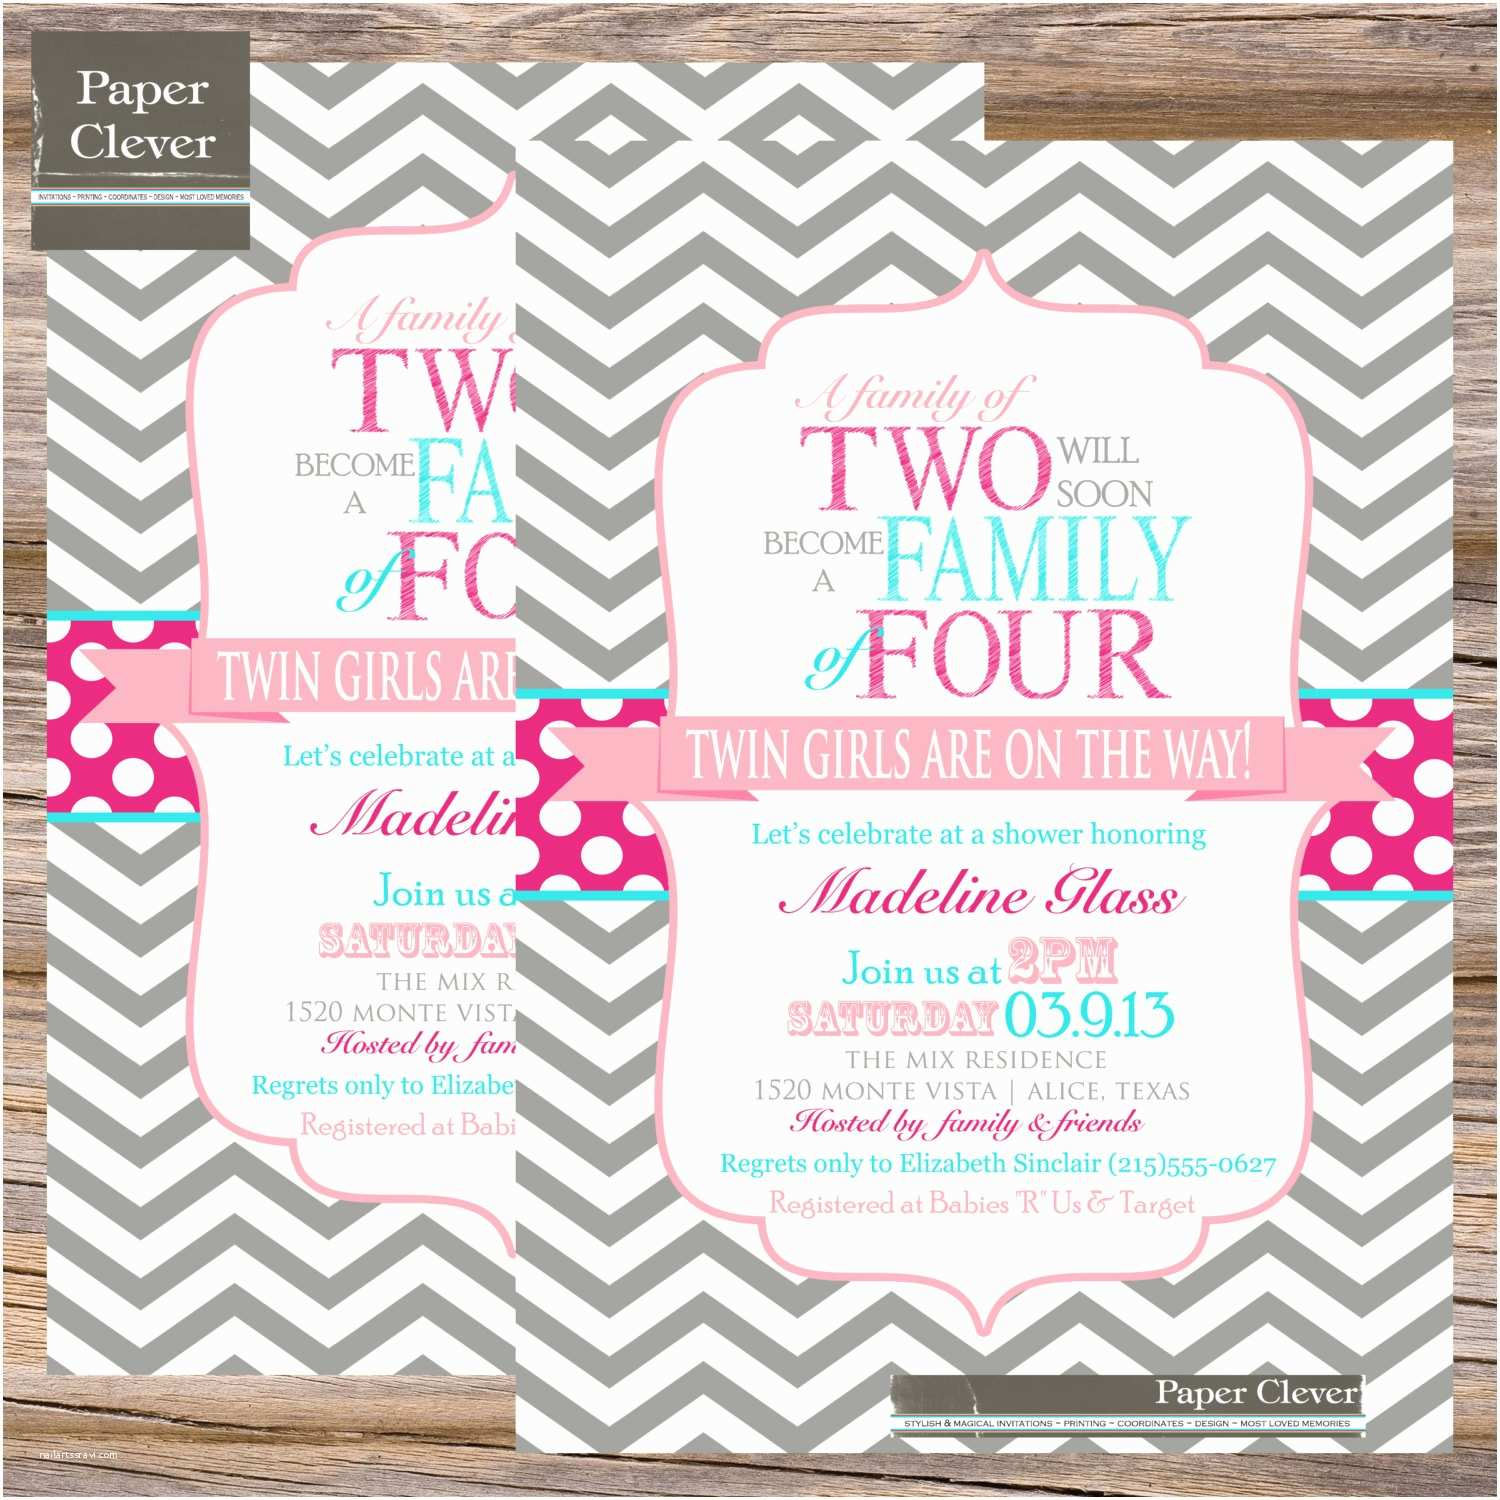 Twin Girl Baby Shower Invitations Twins Baby Shower Invitation Wording